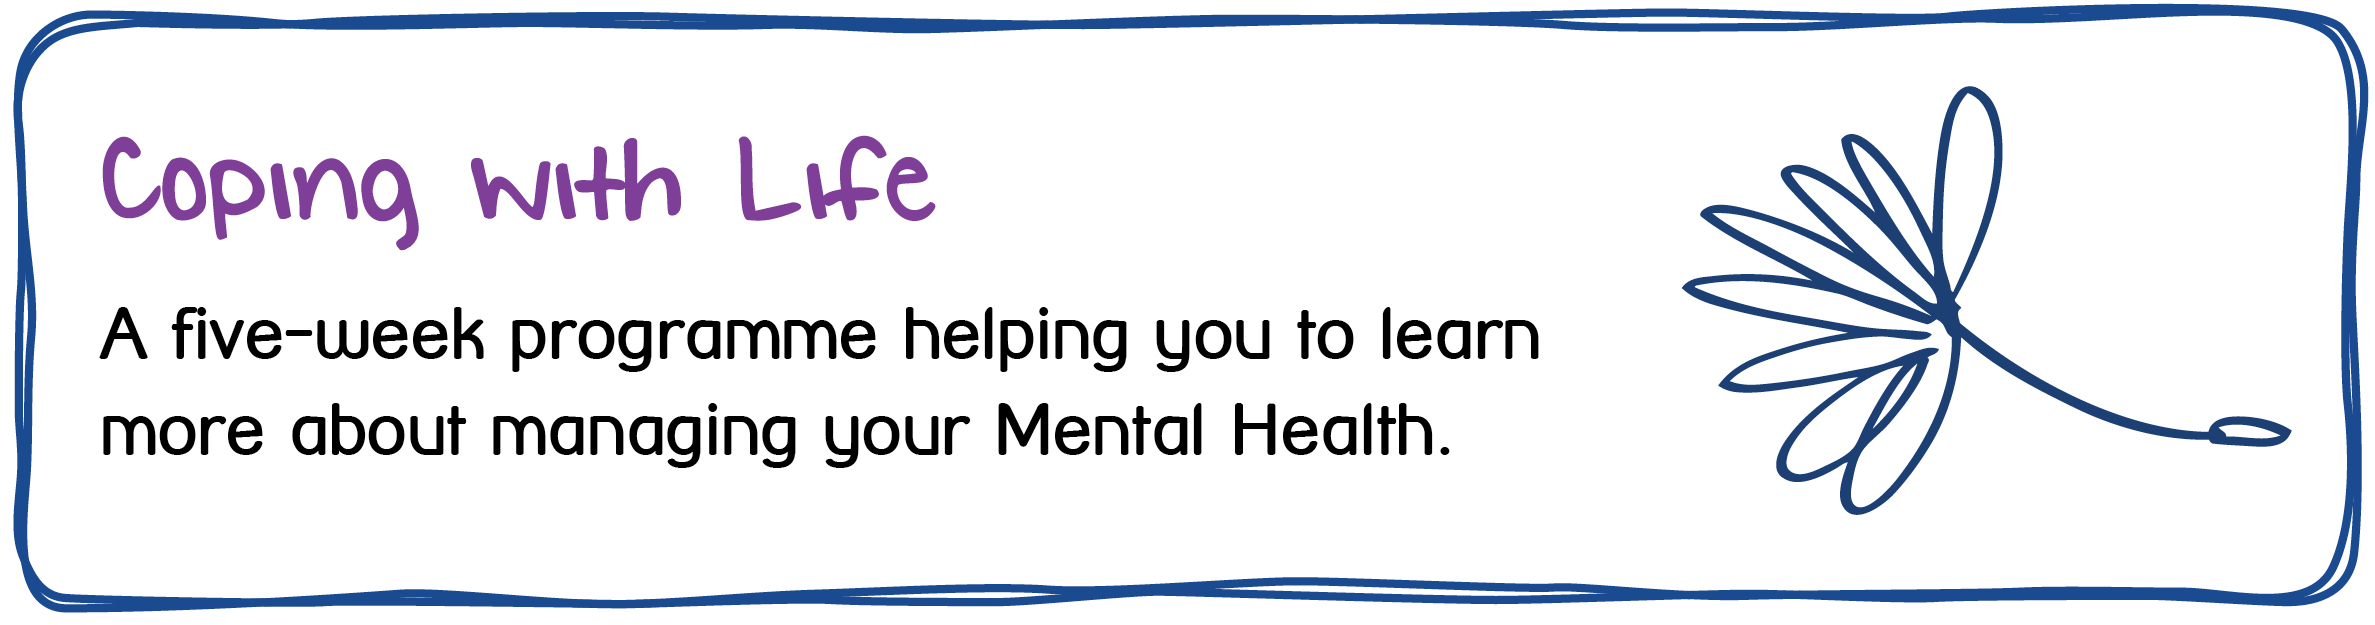 Coping with Life A five-week programme helping you to learn more about managing your Mental Health.